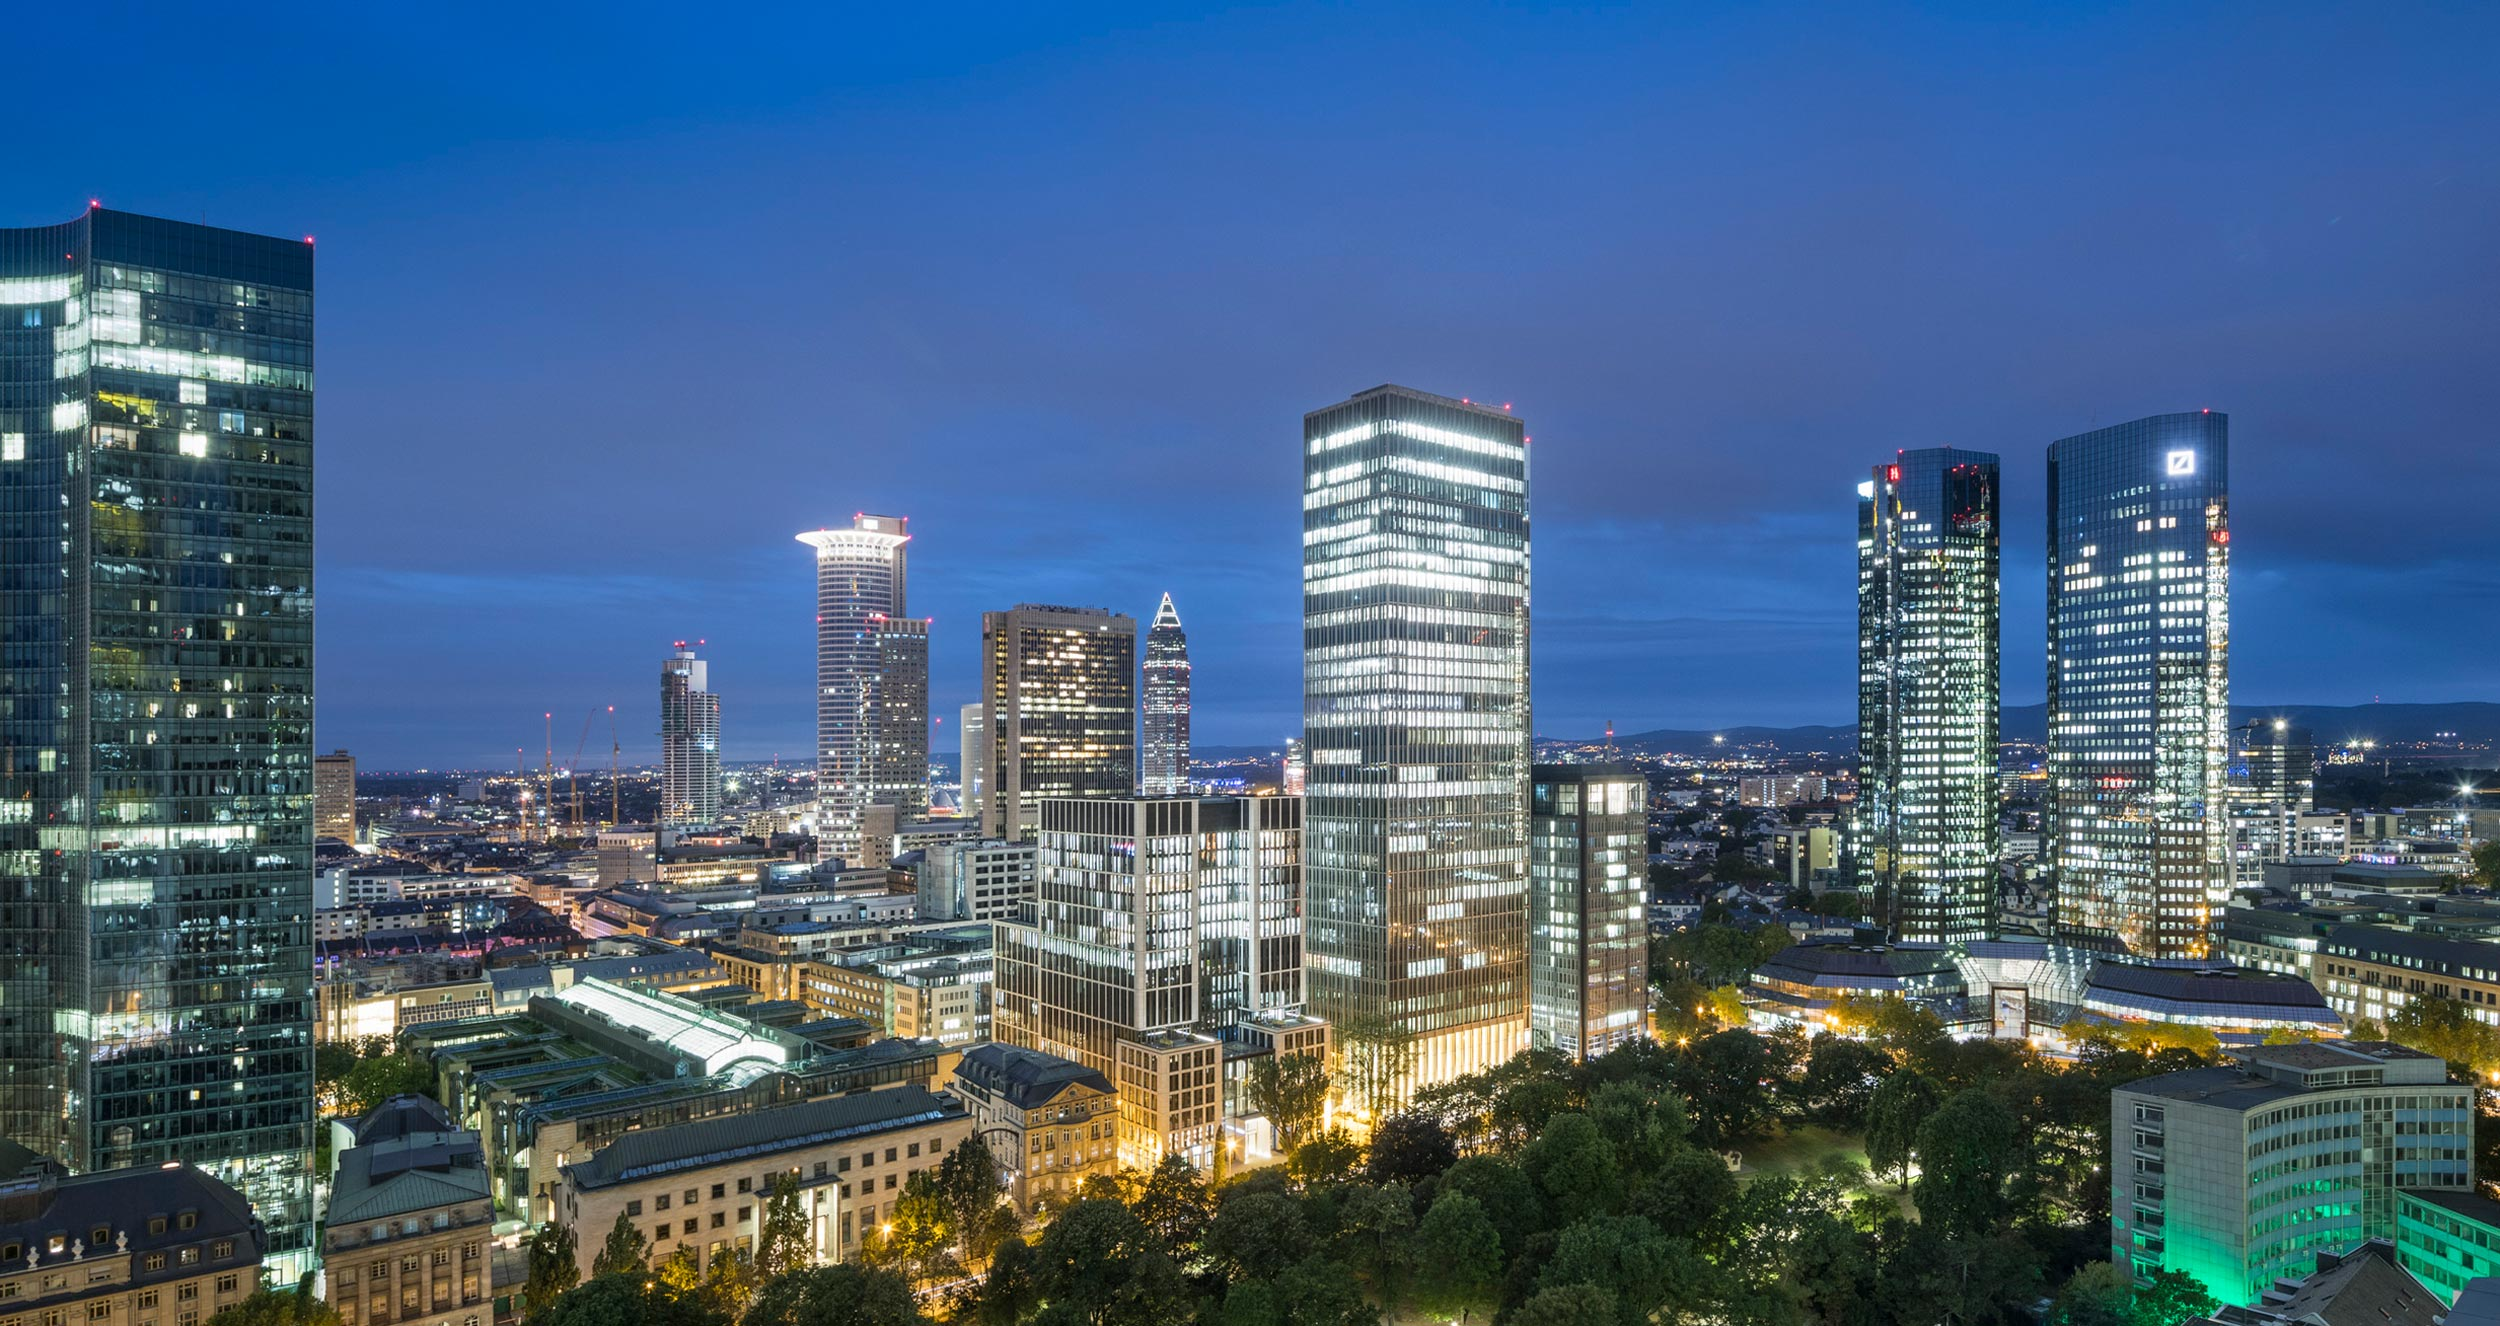 Marienturm in Frankfurt/Main © Pecan Development GmbH